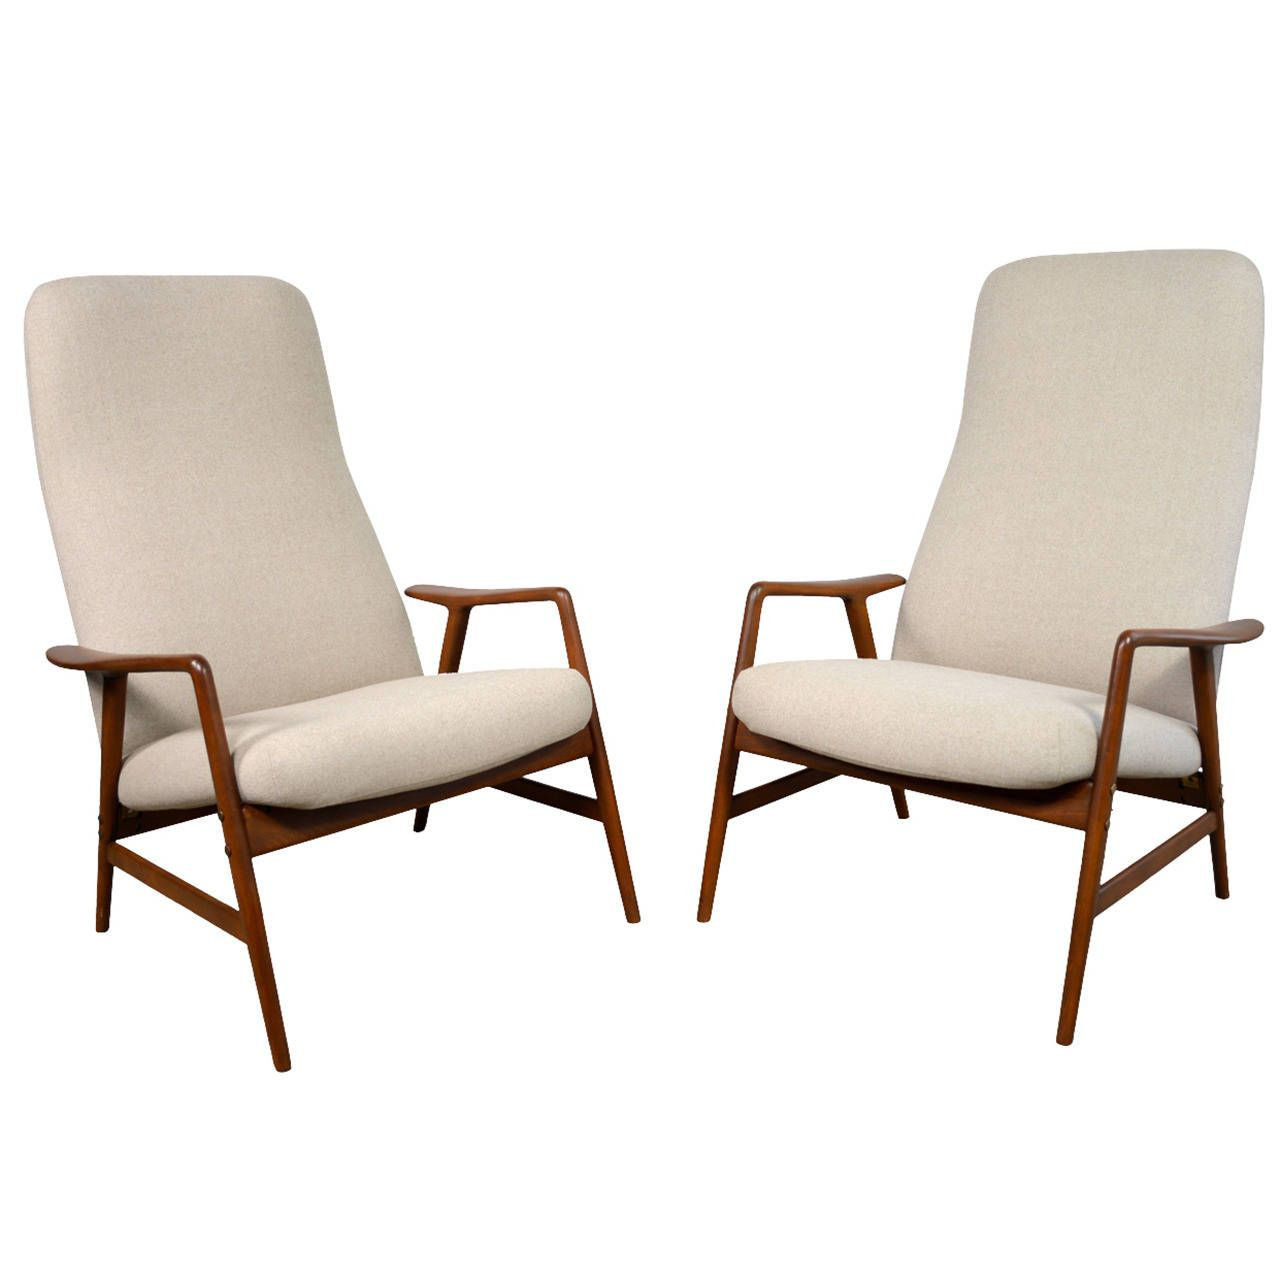 Alf Svensson Pair Of Danish Modern Reclining Lounge Chairs For Dux 1stdibs Com Vintage Lounge Chair Furniture Lounge Chair